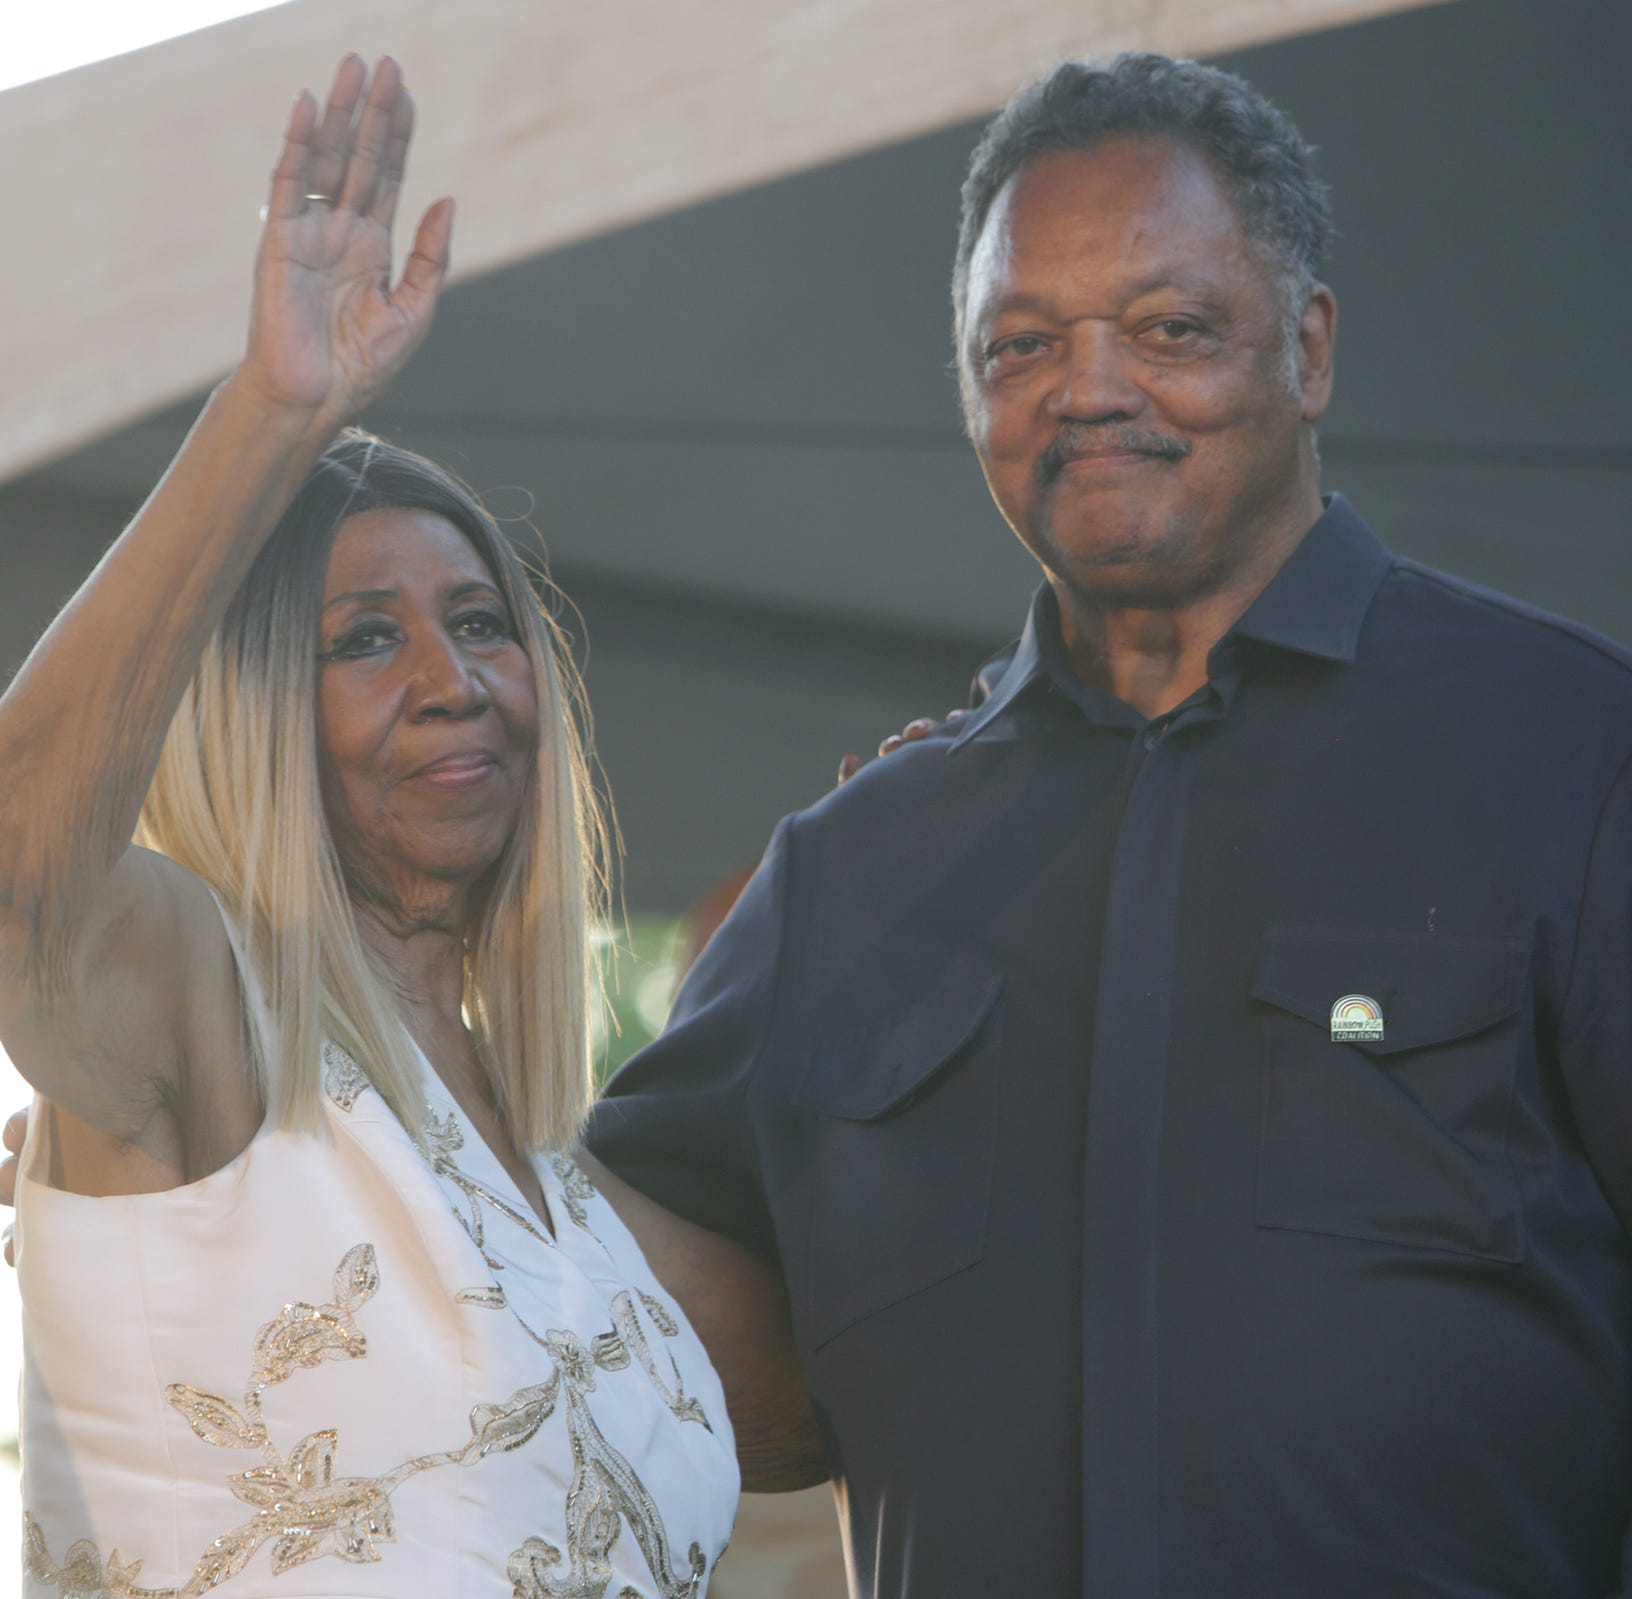 Rev. Jesse Jackson to speak at Aretha Franklin's church